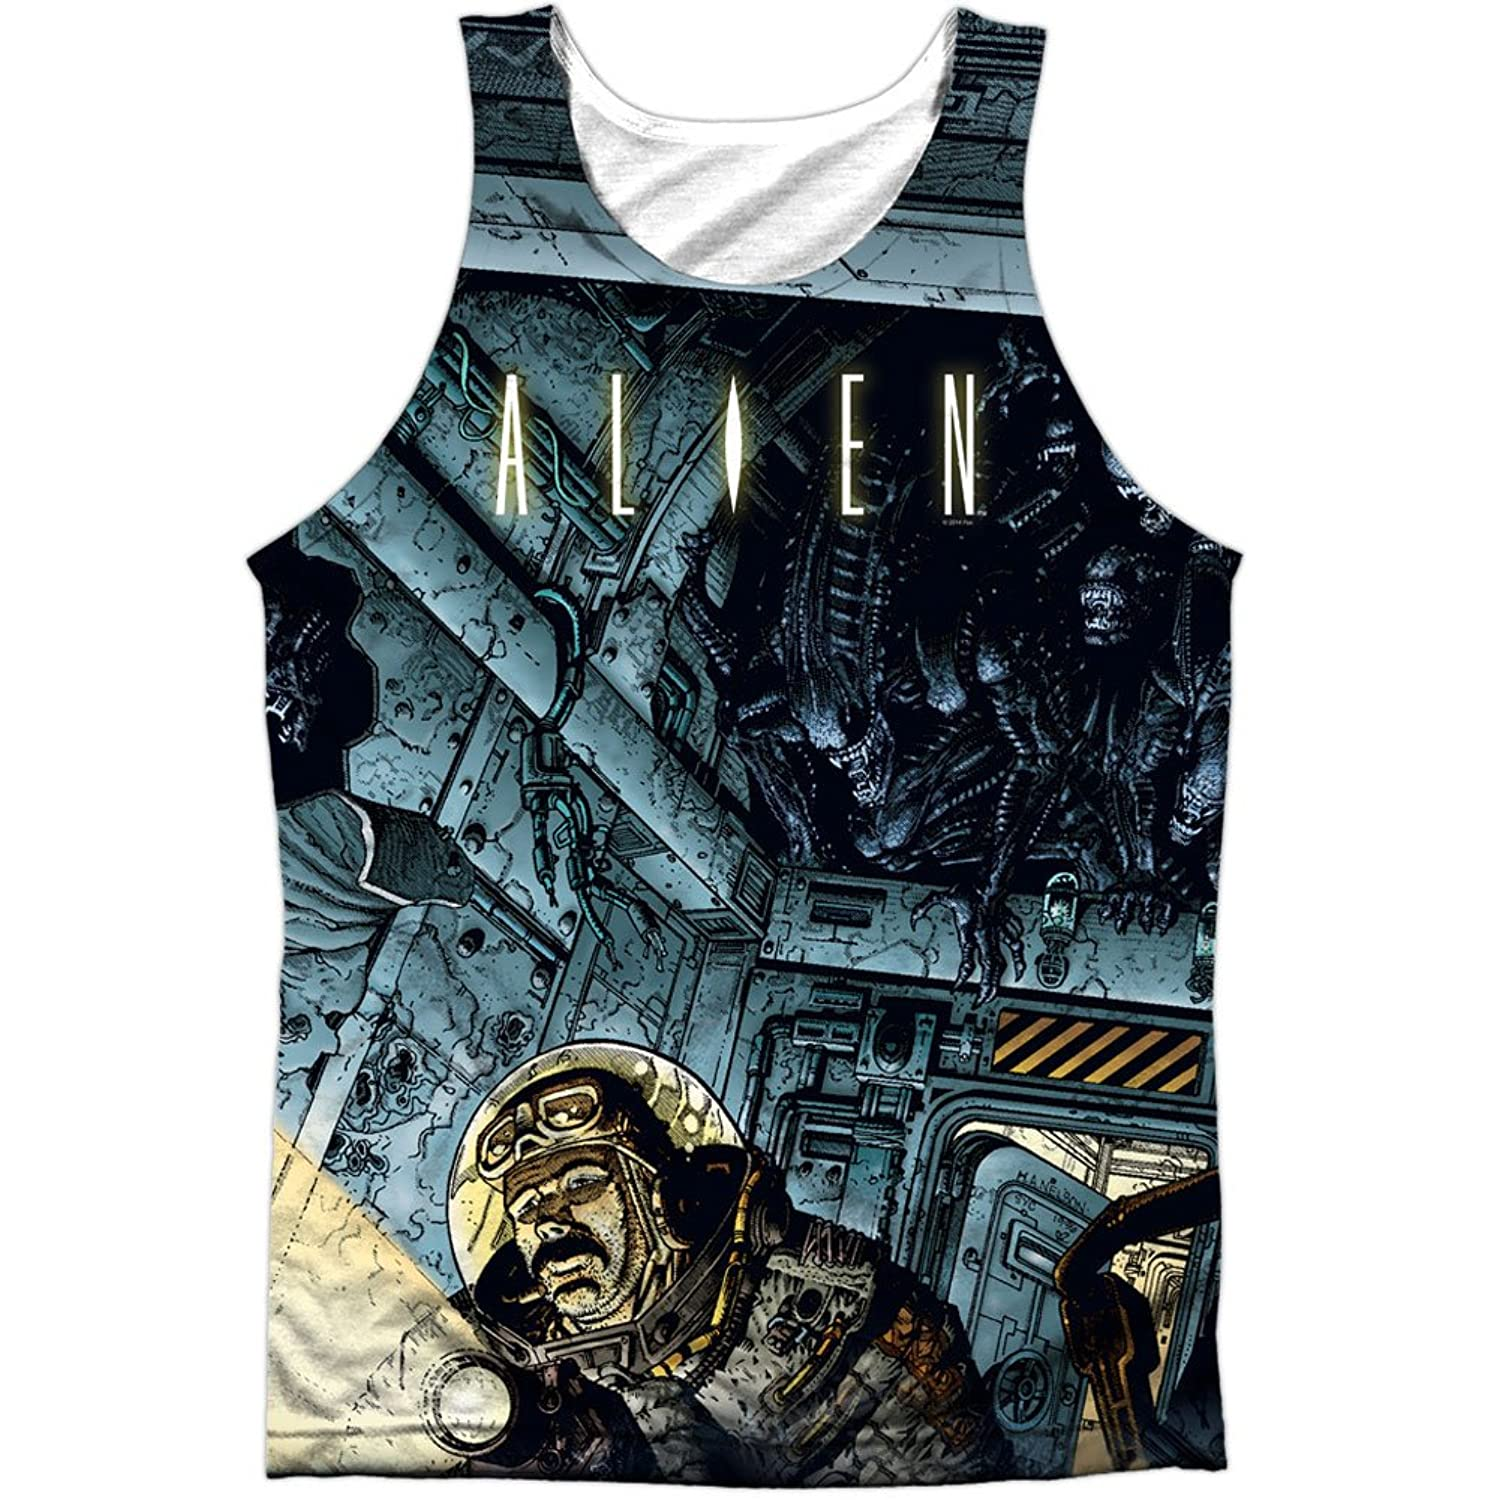 Alien Horror Science Fiction Movie Comic Book Attack Front Print Tank Top Shirt